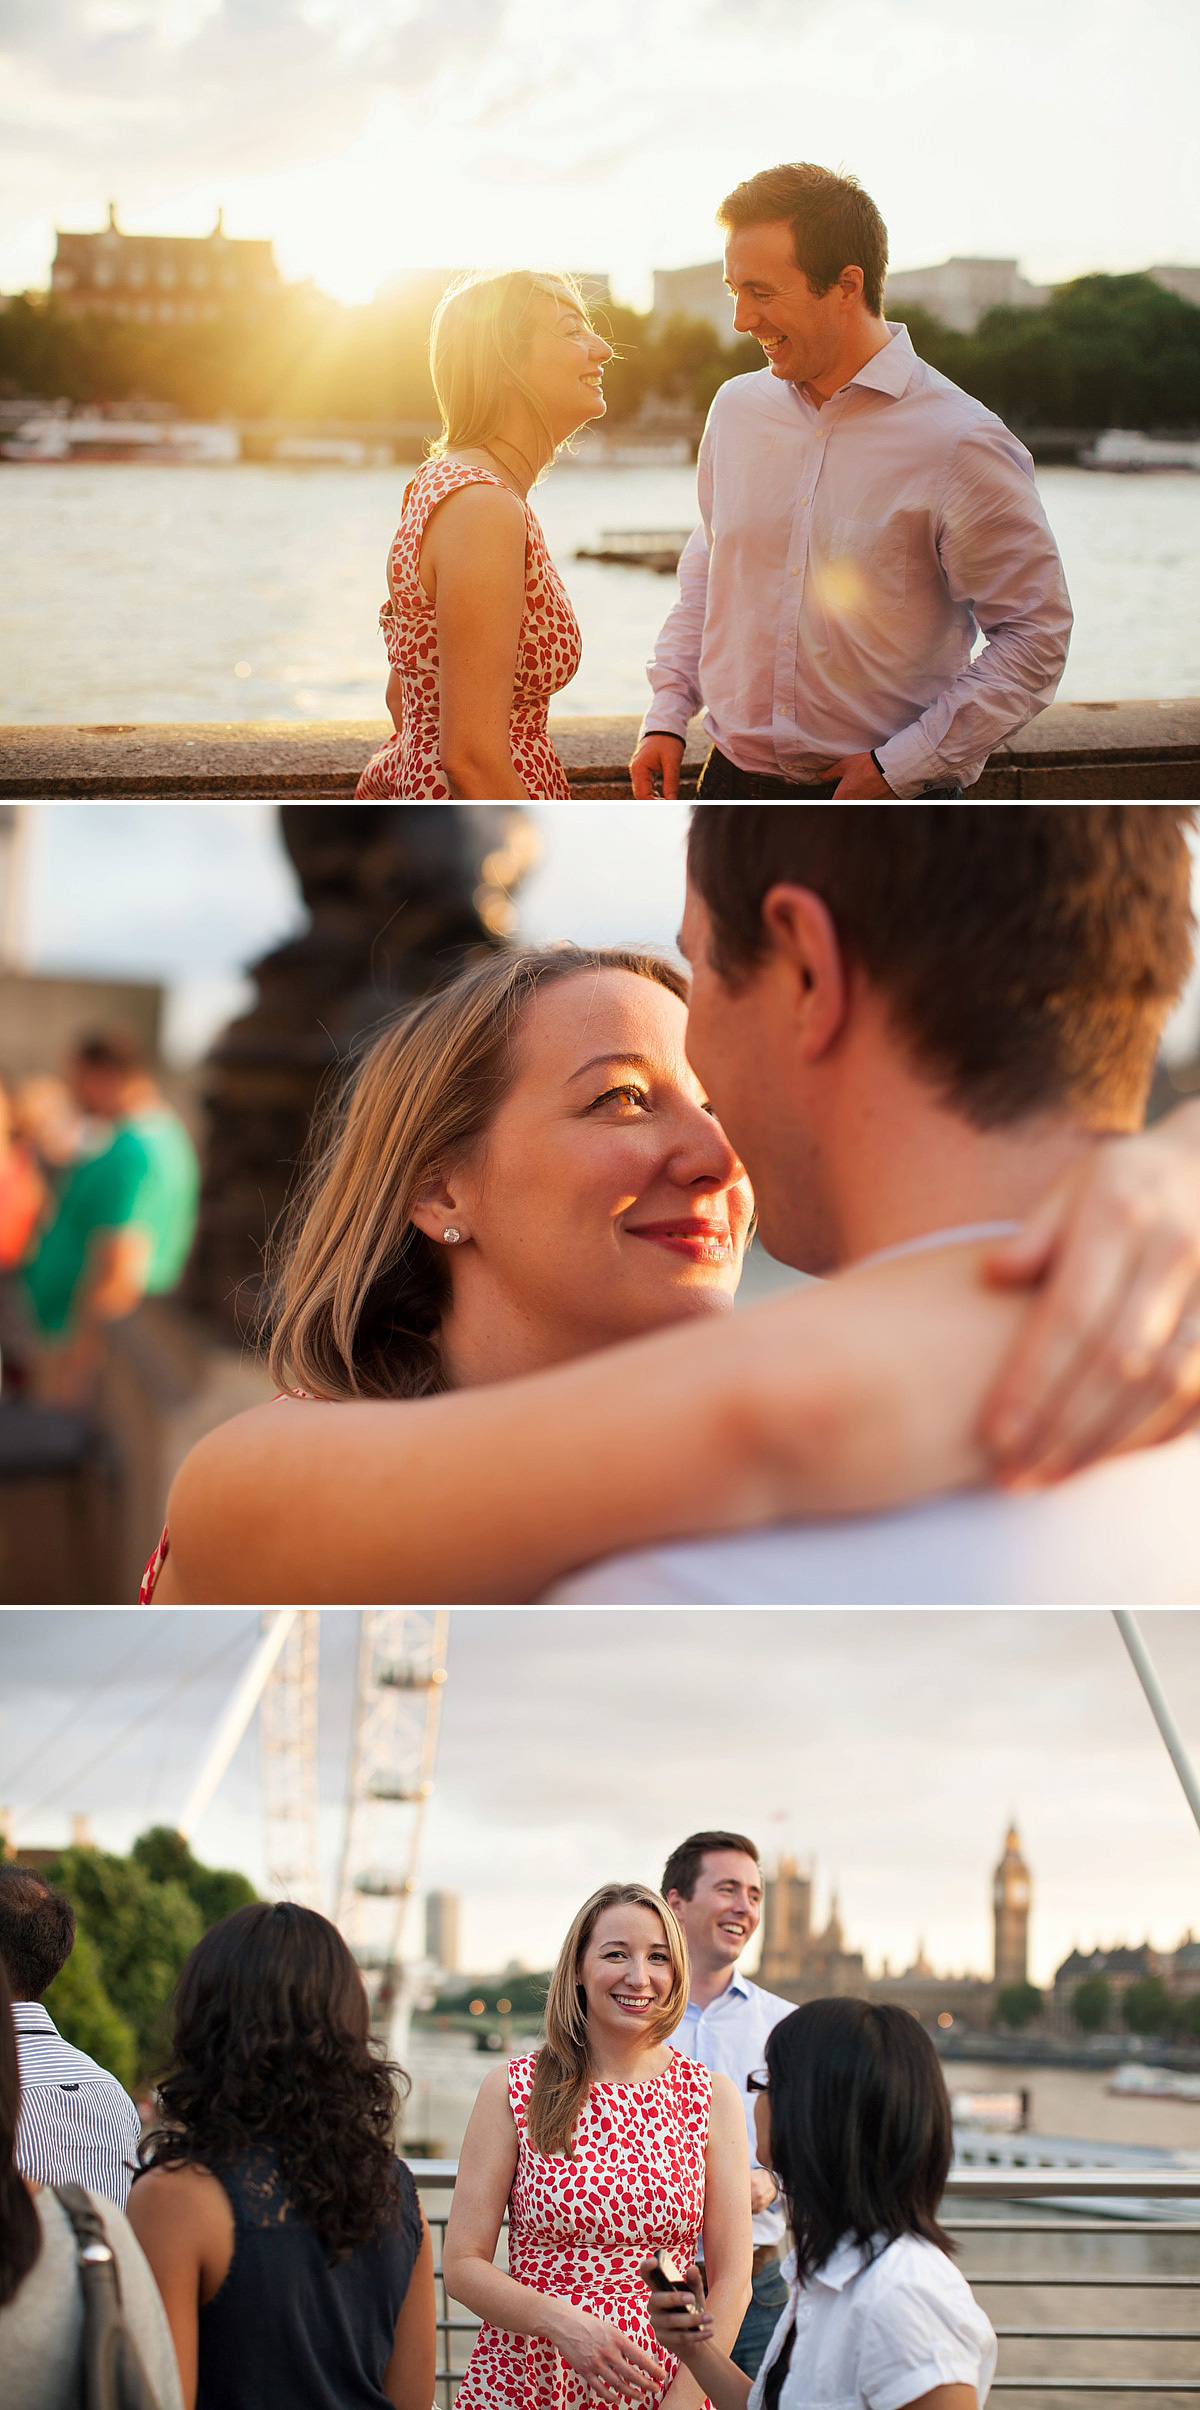 Engagement Photos in London by Magda Lukas 11